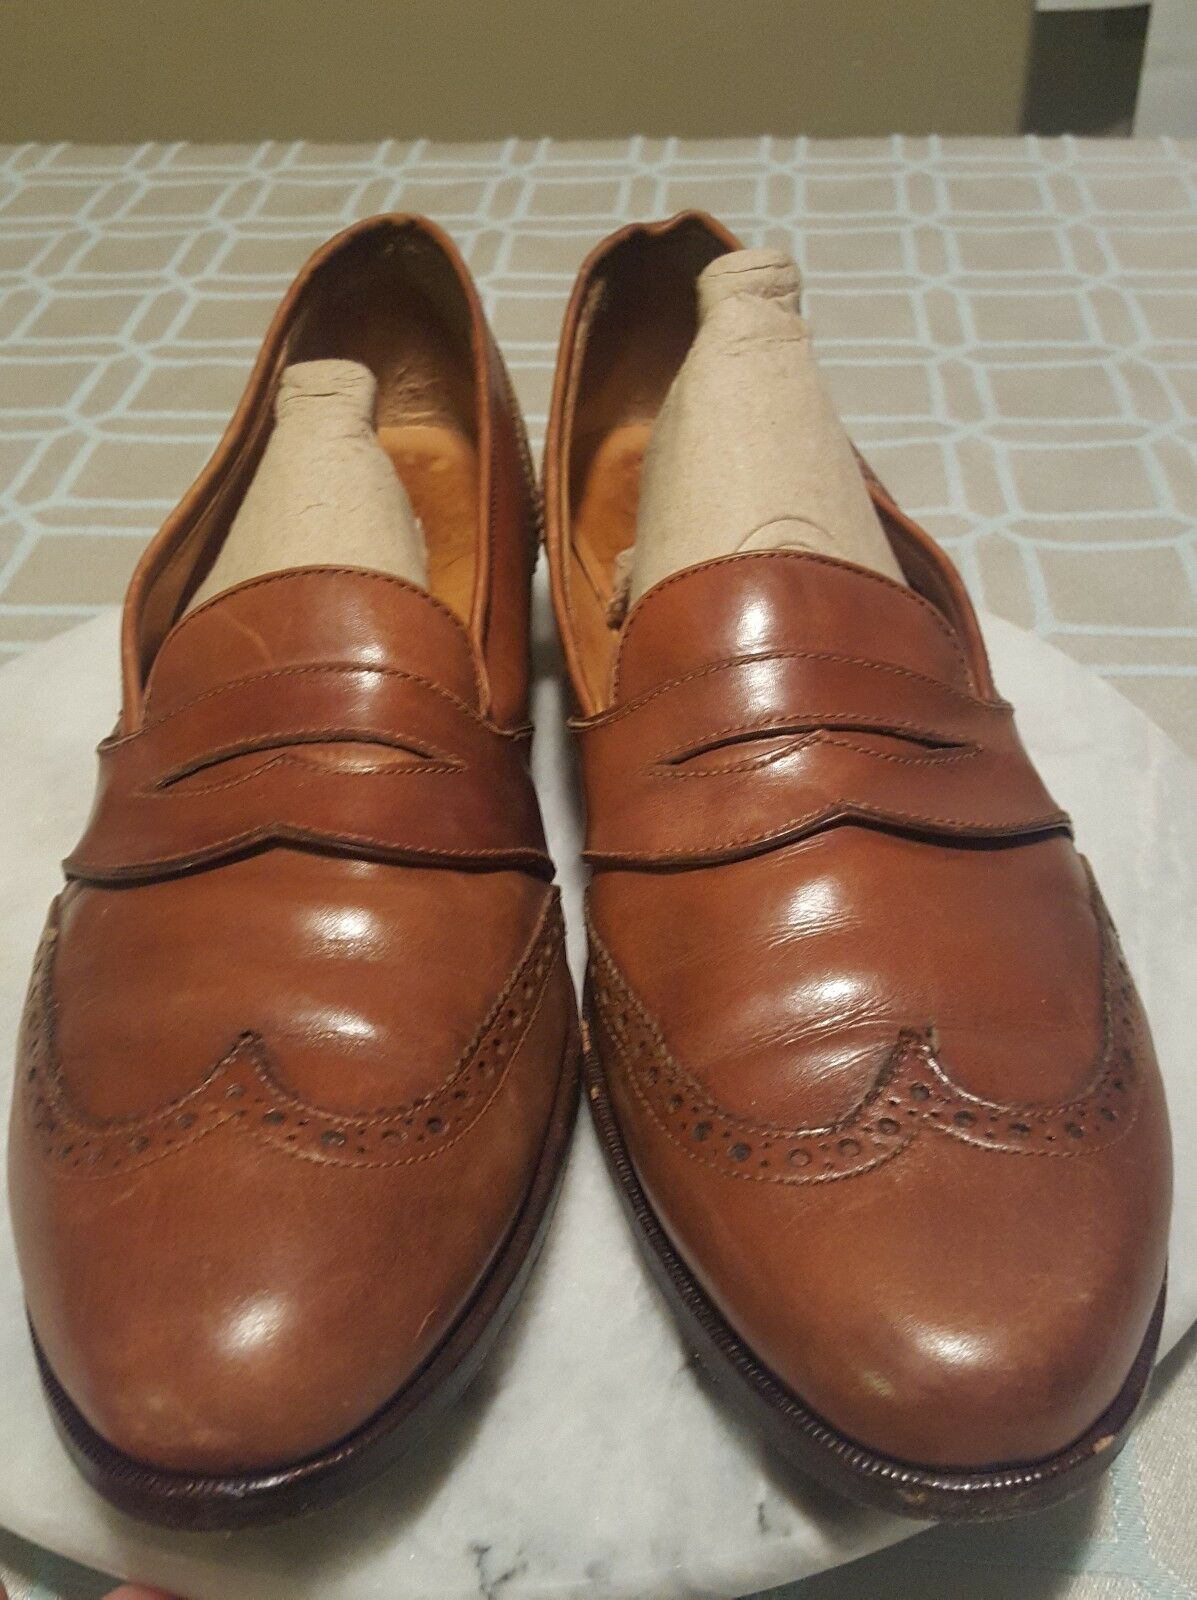 Polo by Ralph Lauren Brown Leather Slip On Dres Loafers shoes Men Size 10 Narrow